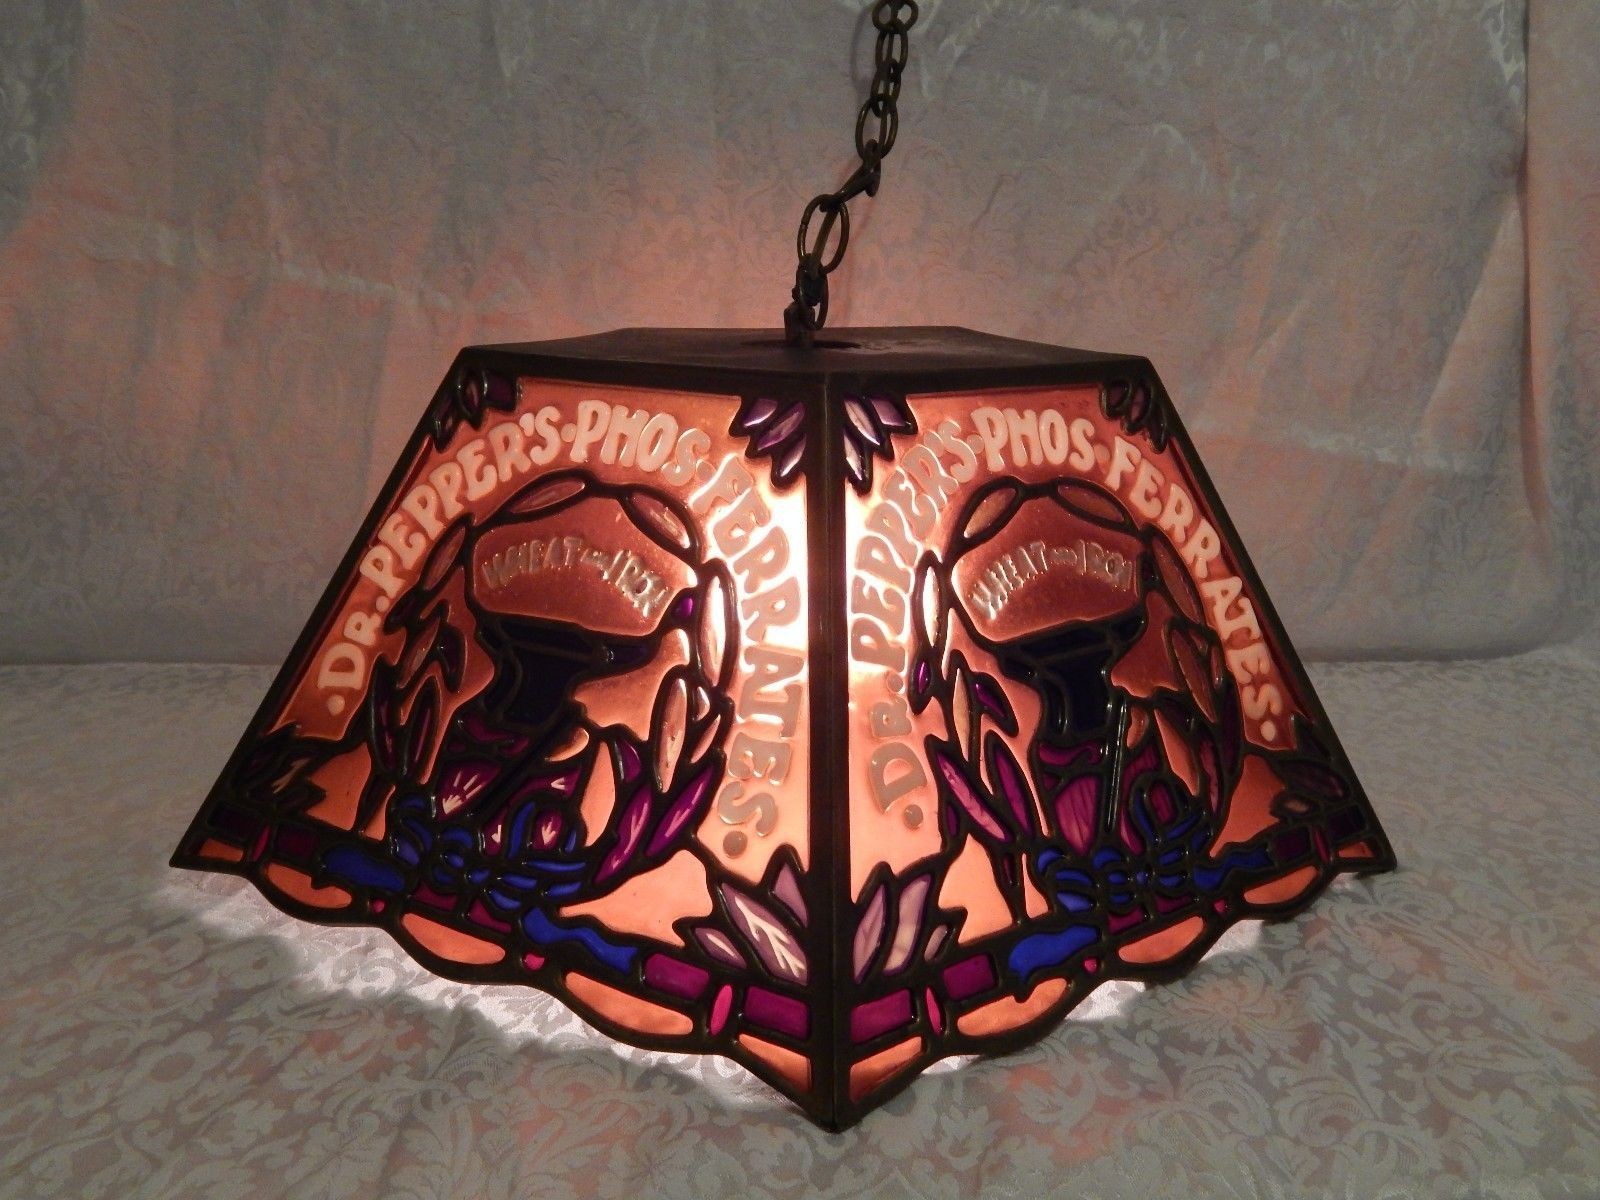 High Quality RARE Vintage Dr Pepperu0027s Phos Ferrates Tiffany Style Stained Glass Hanging  Lamp | EBay